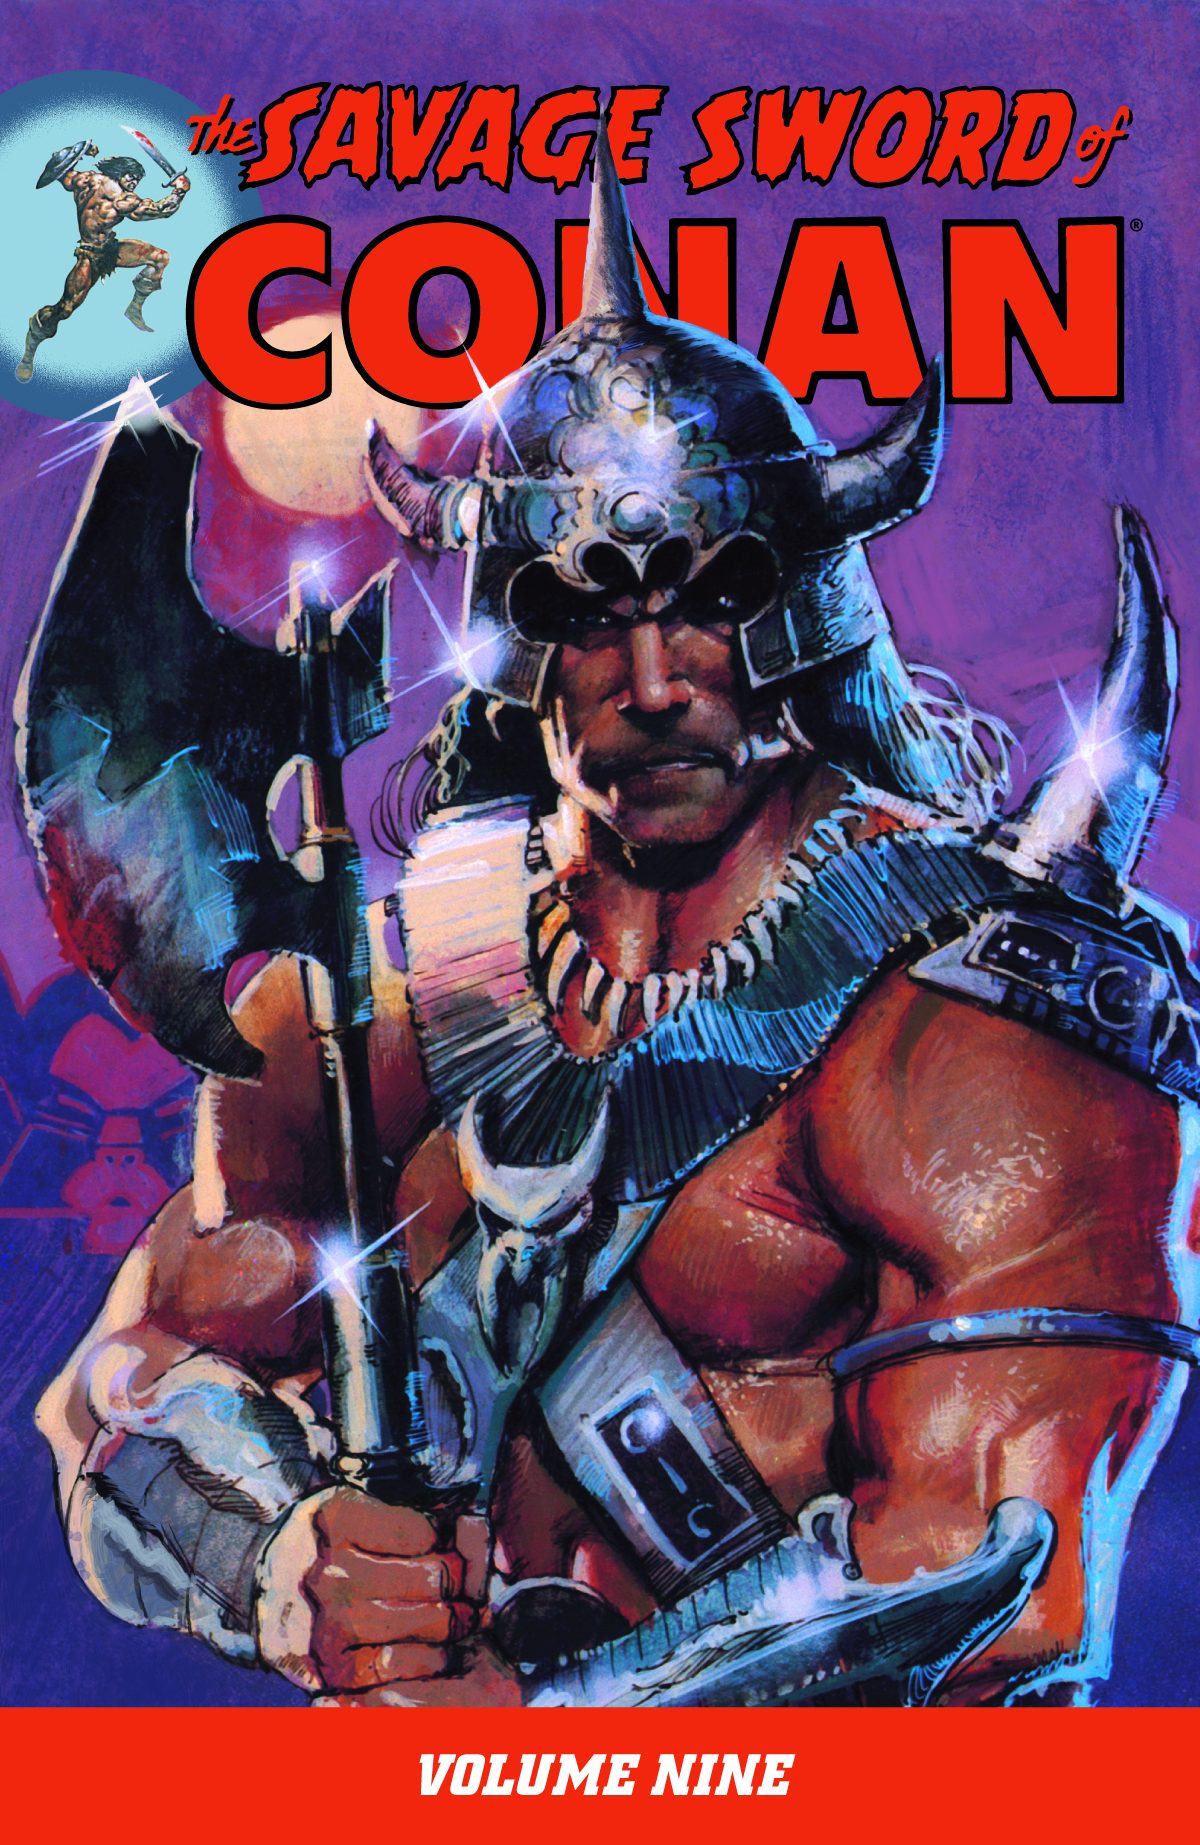 SAVAGE SWORD OF CONAN TP VOL 09